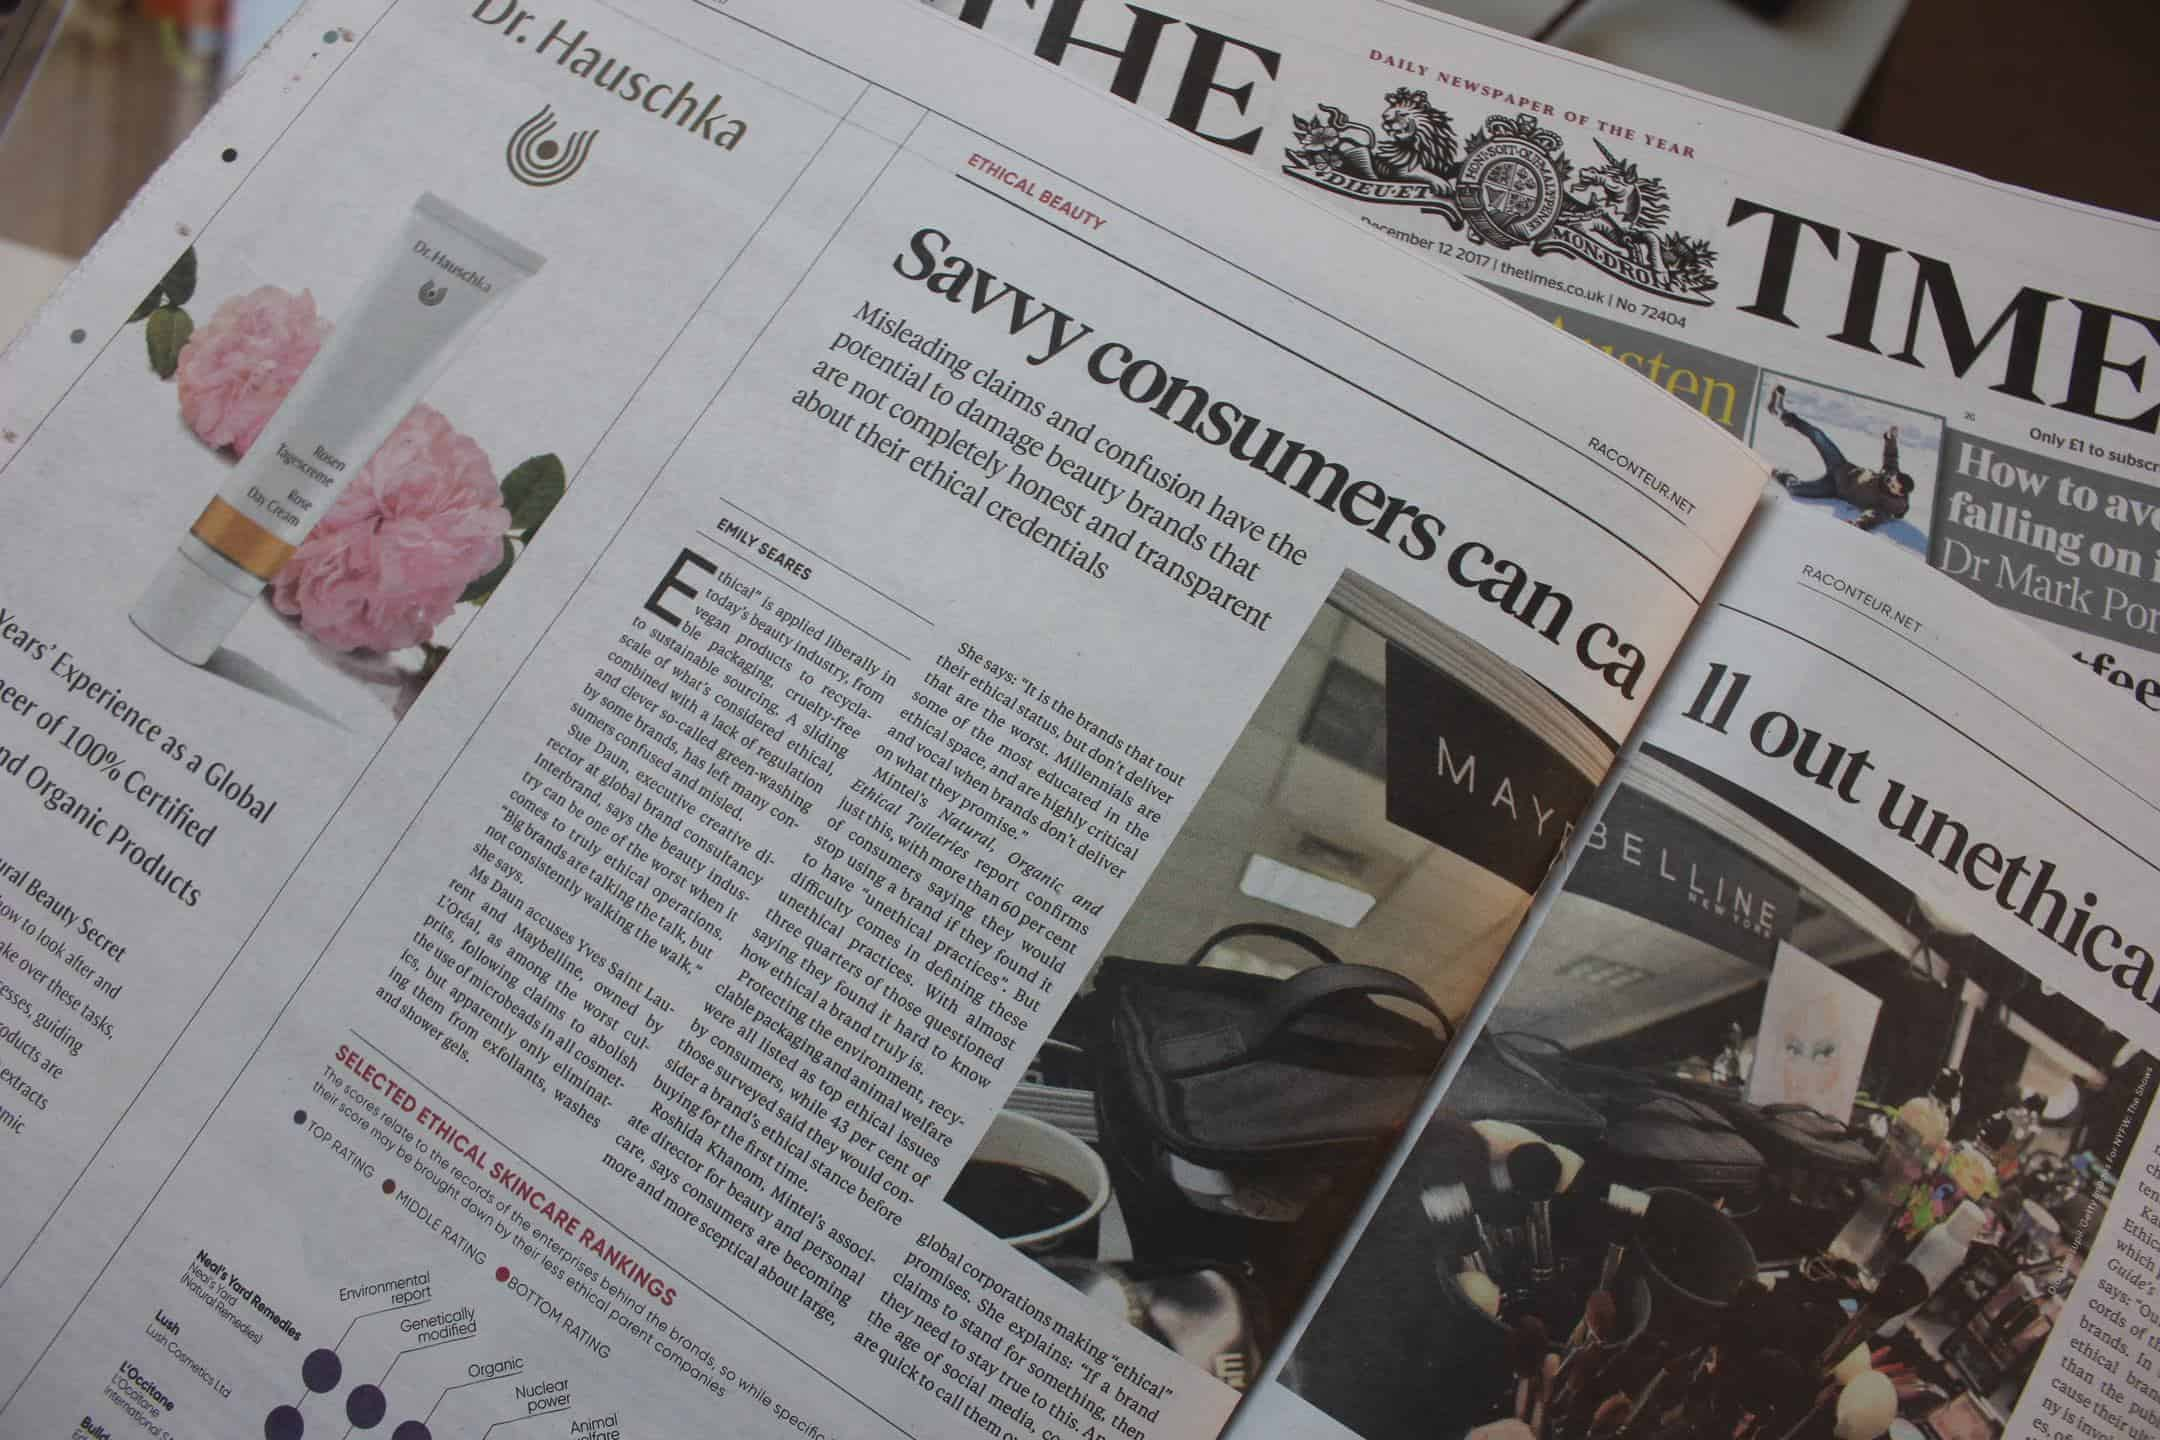 Journalist Emily Seares writes for The Times Beauty Economy report